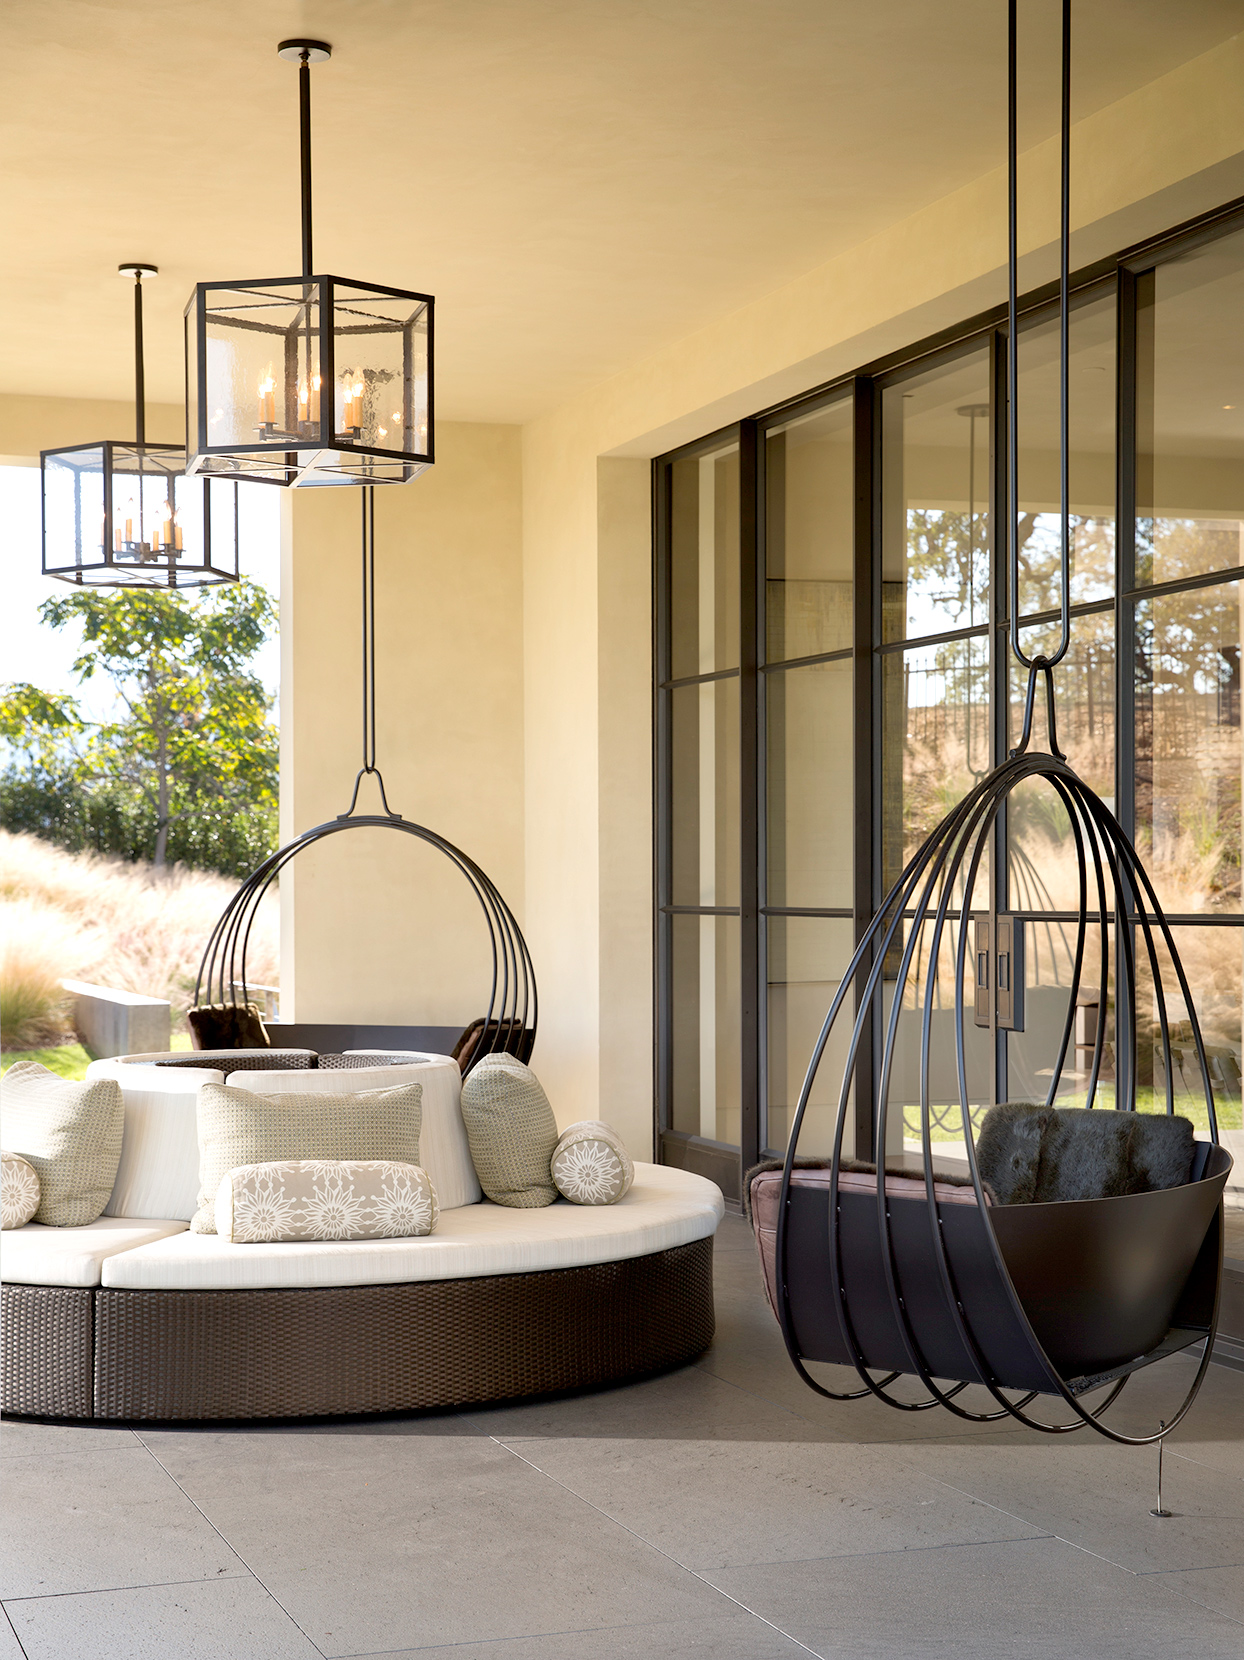 Outdoor seating with round couch and hanging chair